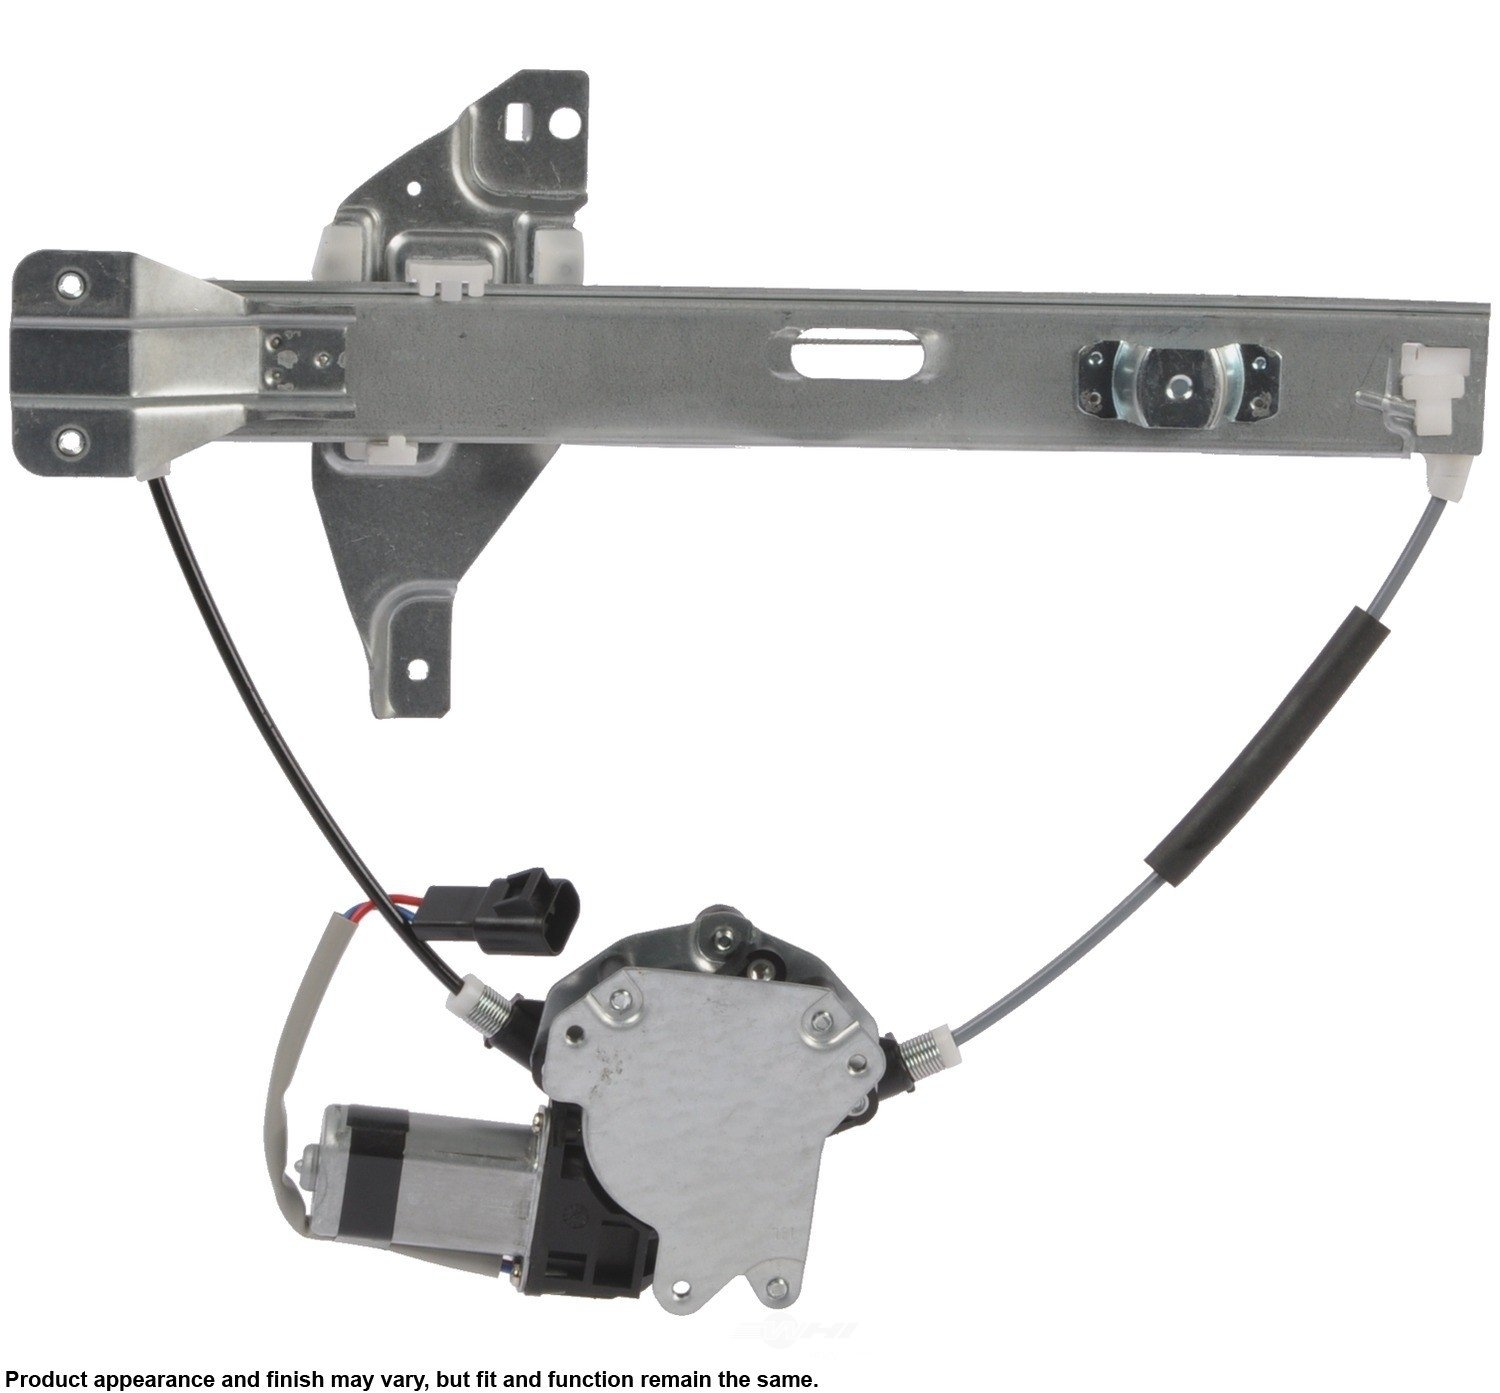 CARDONE NEW - Power Window Motor And Regulator Assembly (Rear Left) - A1S 82-1030BR